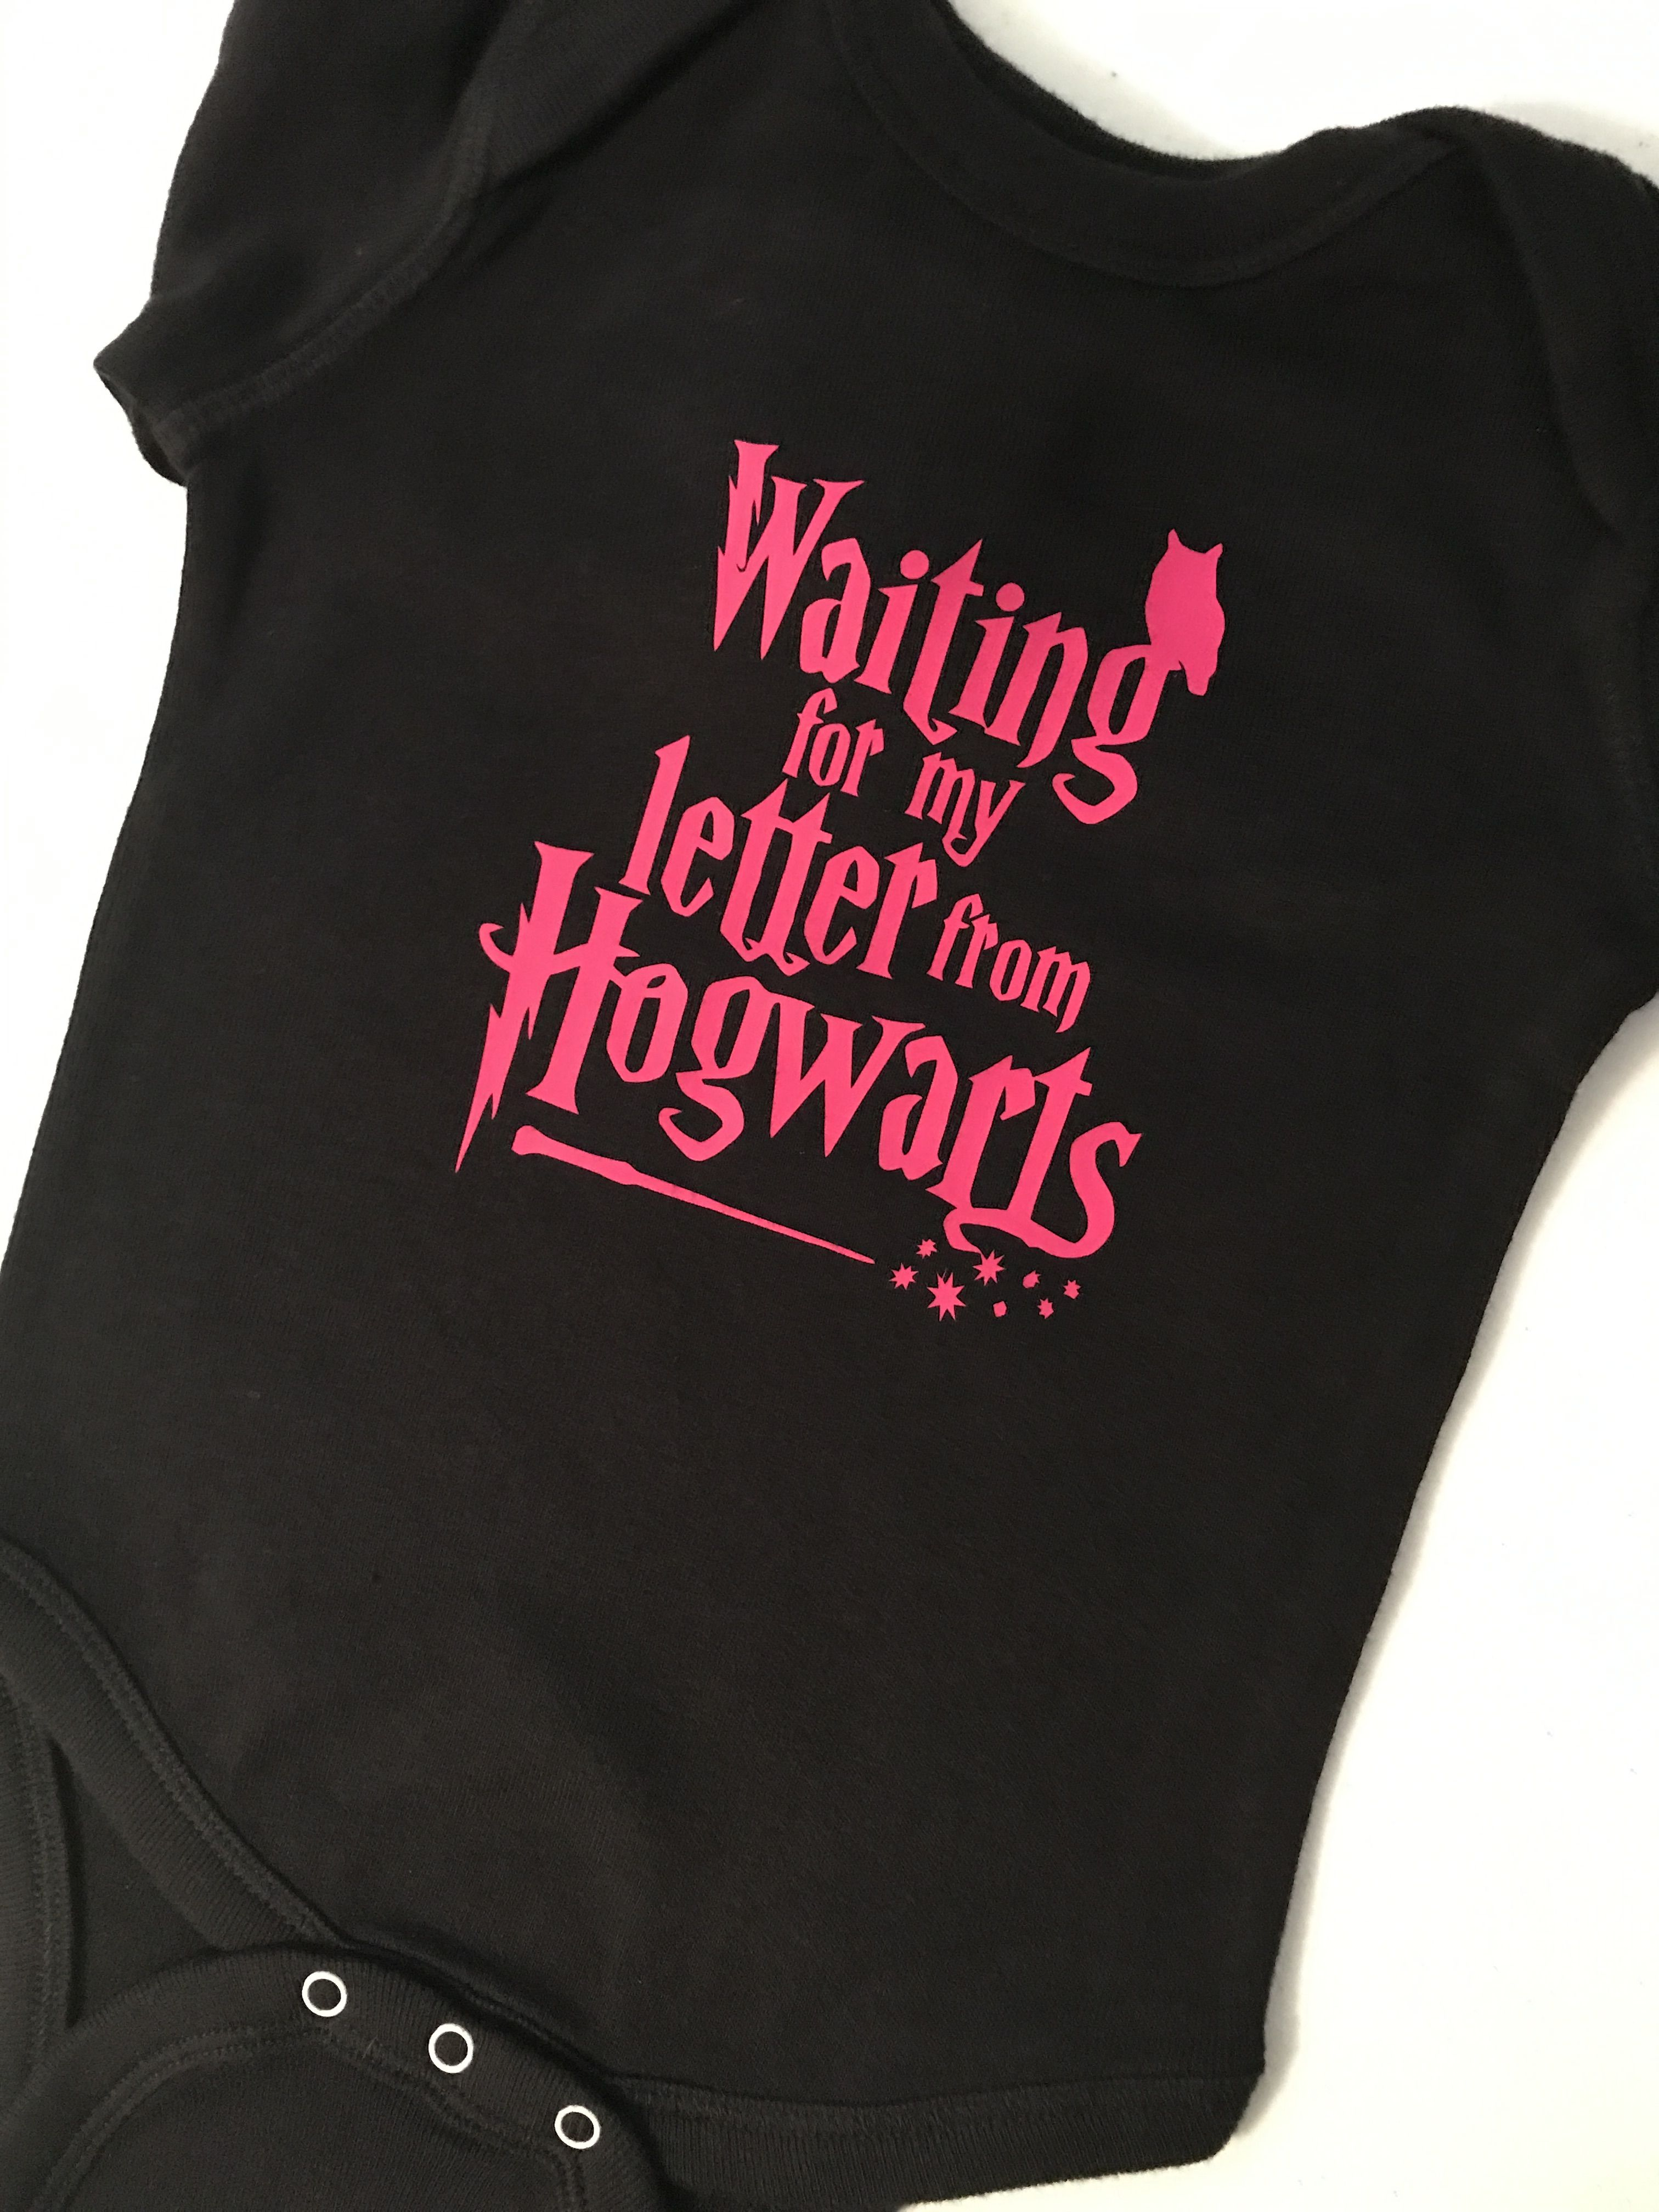 Pin by Lauren Williams on Cricut Creations Clothes